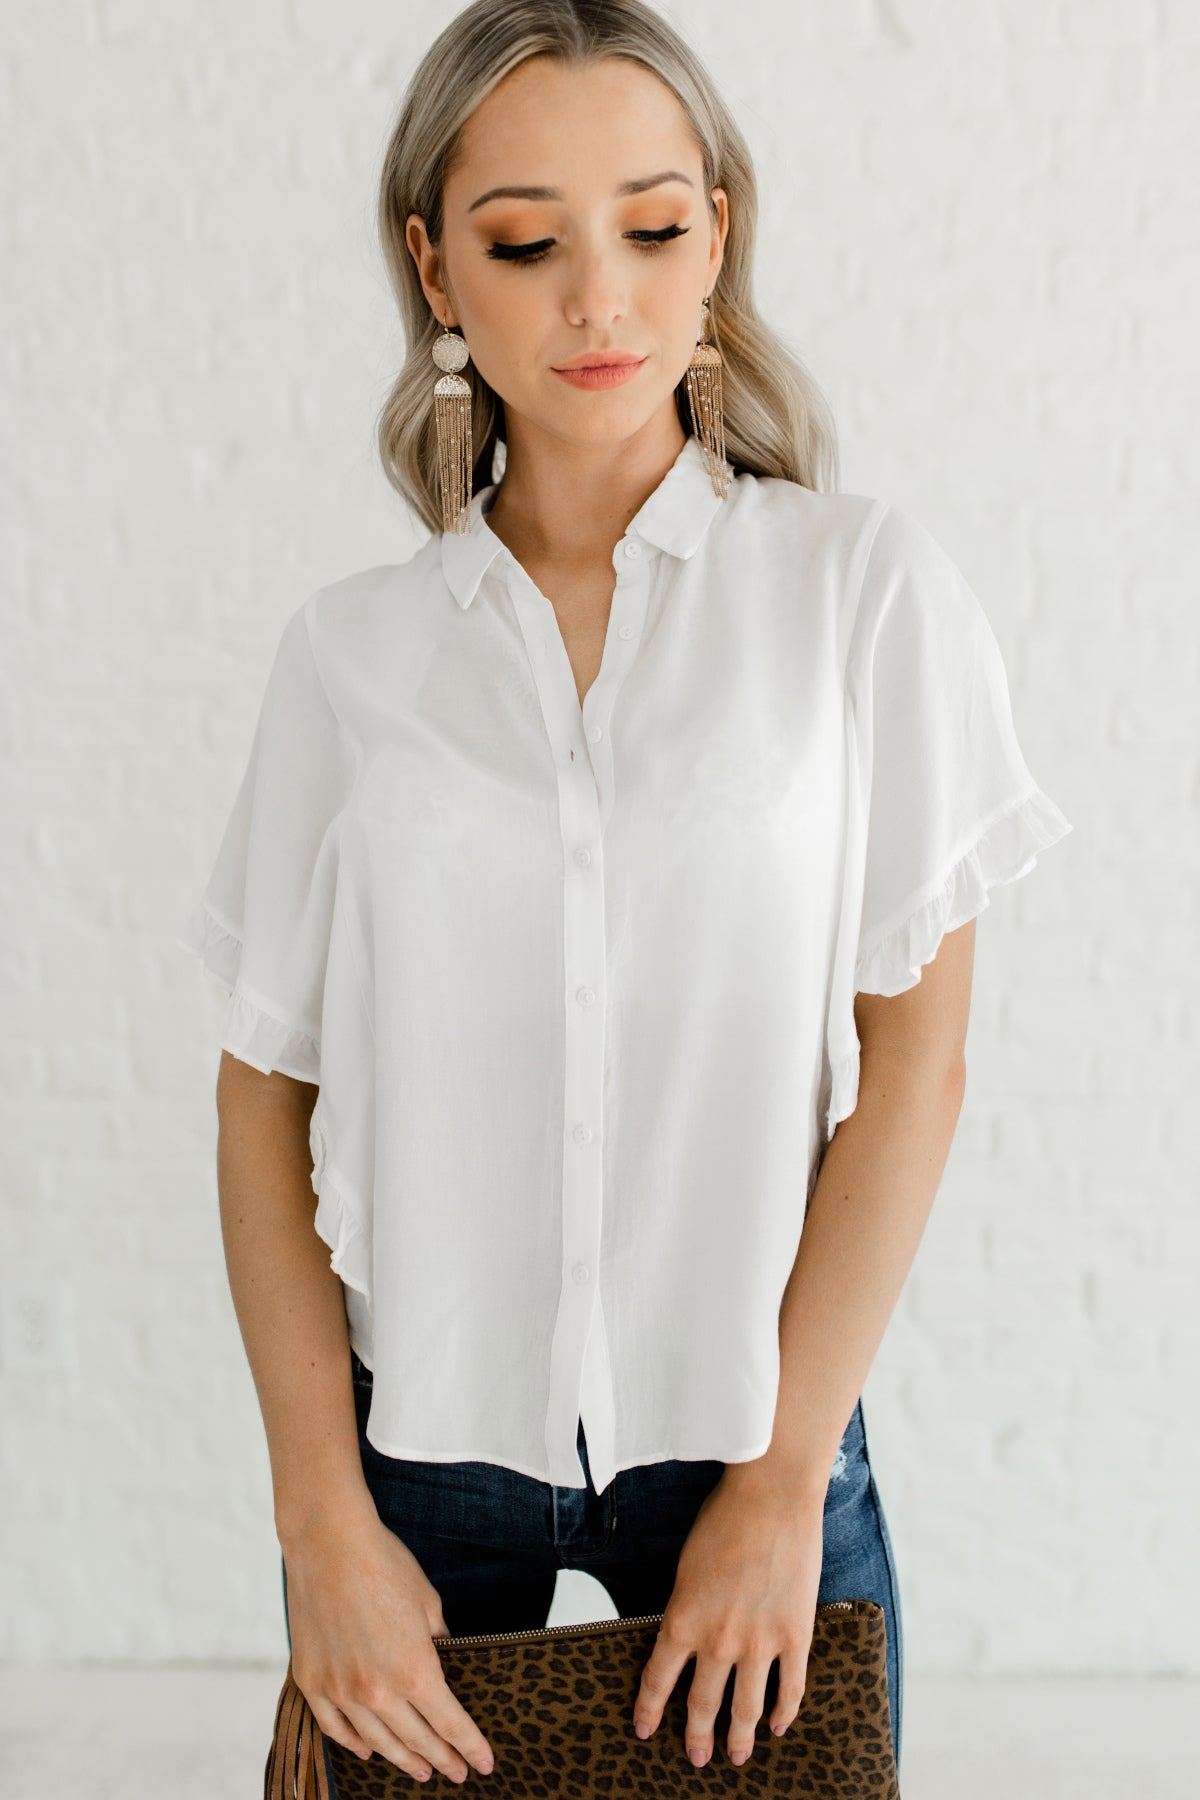 9b2dd6ba4e White Button Up Shirt Collar Cute Business Casual for Women Ruffle Tops